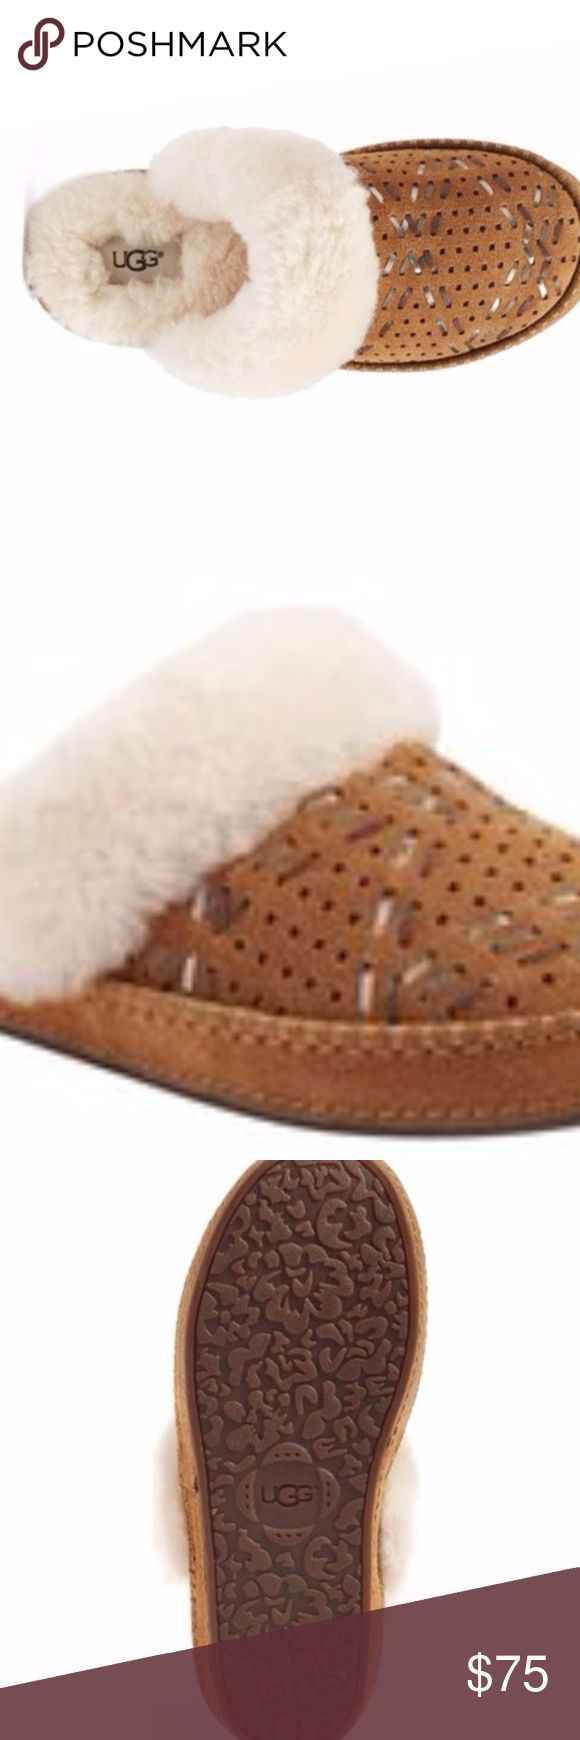 UGG Australia Moraene Slipper Shoes 10 Brand New Aira - Tehuano Genuine Shearling Slipper 7 New with box A fluffy, genuine shearling cuff and perforated vamp detailed with woven leather strips define a water-resistant suede slipper set on a decorative stitched sole. The lining is plush UGGpure (TM), a textile made entirely from wool but engineered to look and feel like shearling. Leather and genuine shearling upper/100% UGGpure wool lining/rubber sole UGG Shoes Slippers